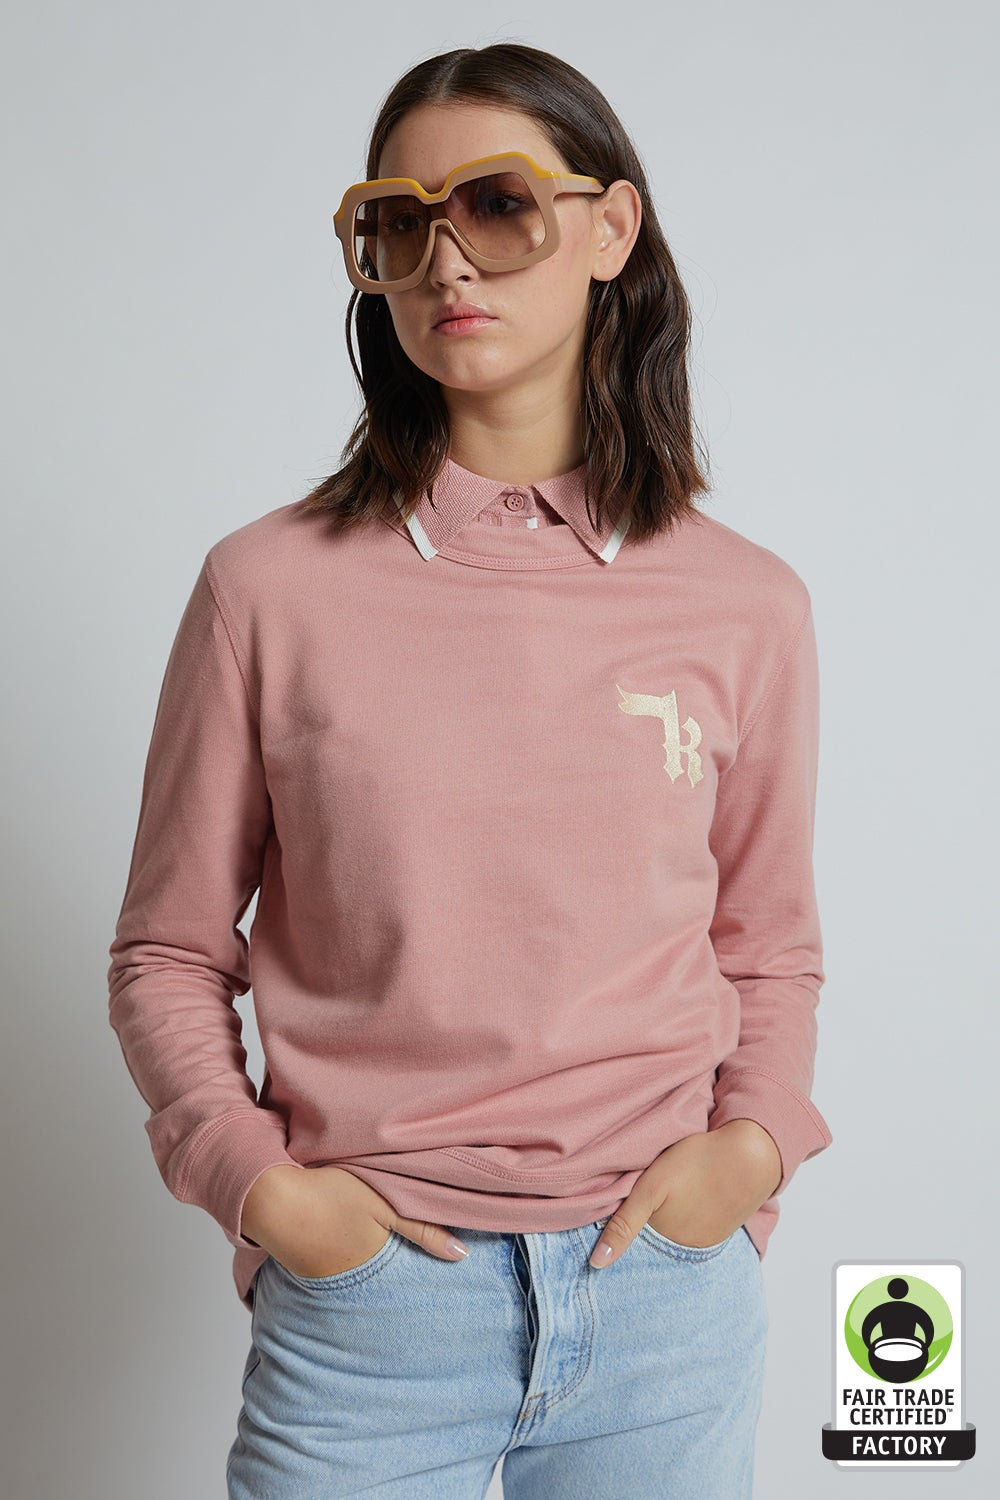 Embroidered K Monogram Organic Cotton Sweatshirt